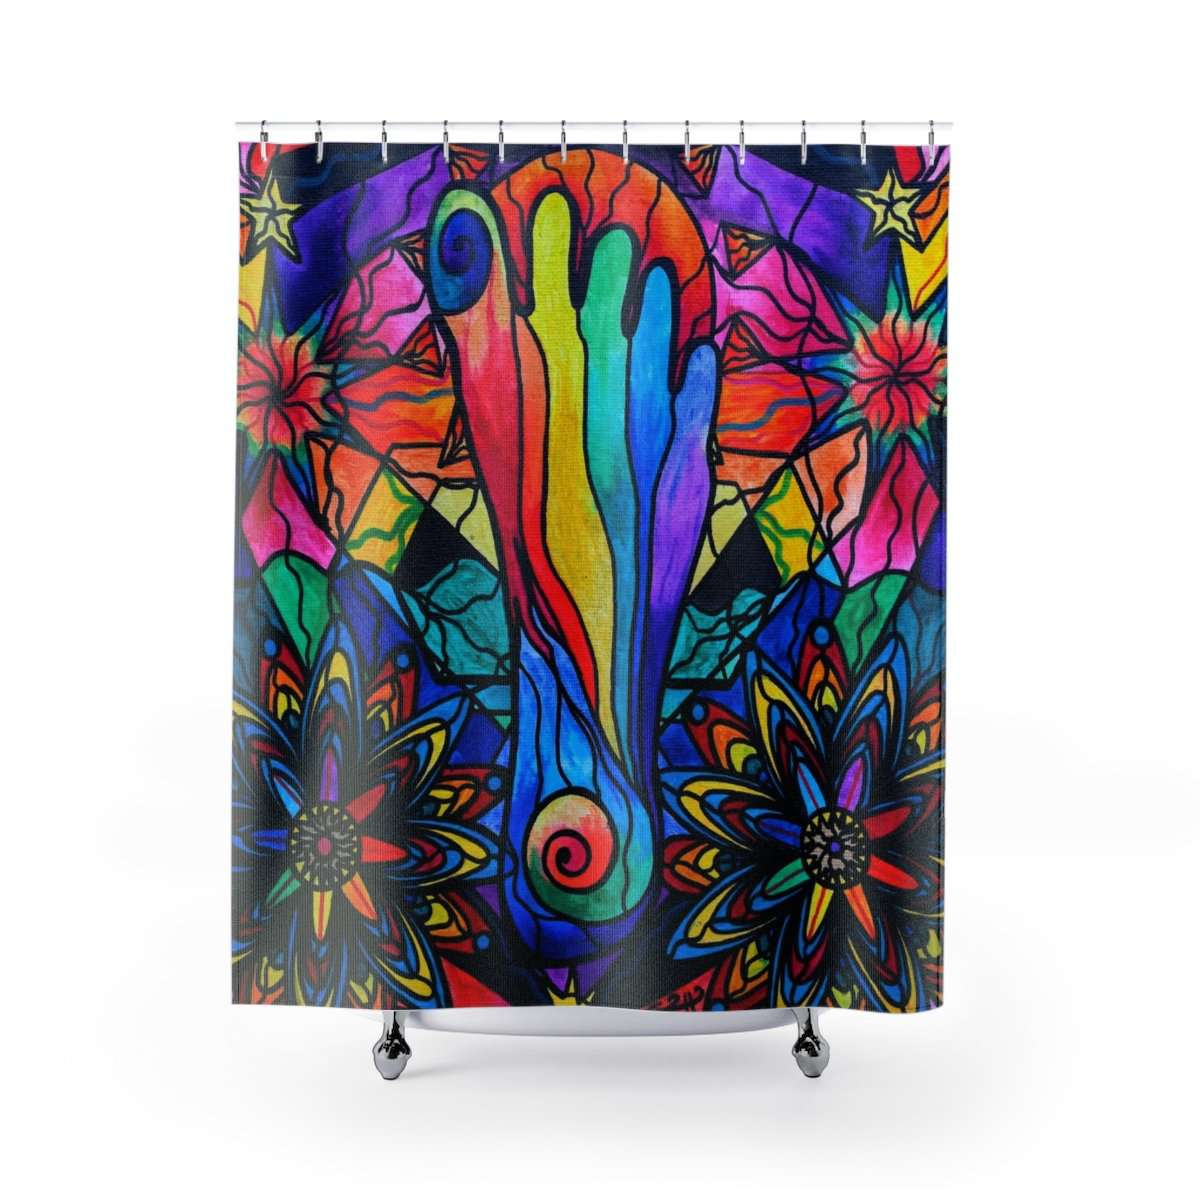 Moving Forward - Shower Curtains